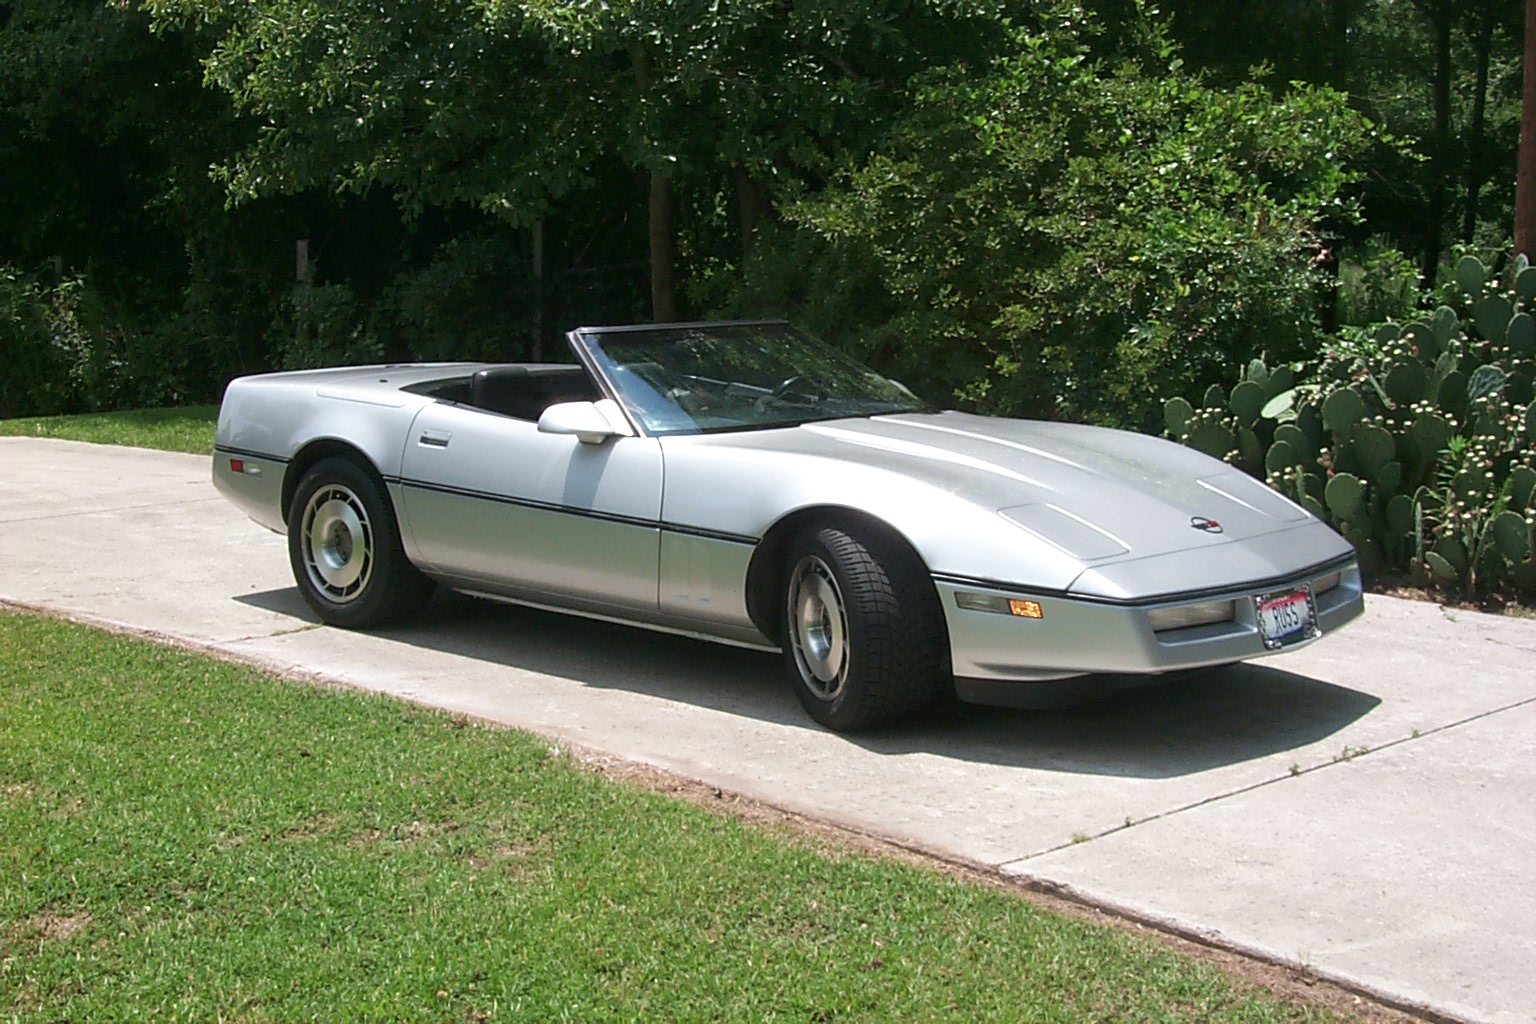 Car Gallery Automobiles Florida also 287248 1969 Camaro Ss Pro Street Over 80 Build Street Legal 9sec Car further 1993 Chevrolet Corvette Pictures C416 pi4783467 together with 1987 Chevrolet Corvette Convertible Pictures T10170 pi7754704 besides 1998 Chevrolet Corvette Pictures C401 pi36056862. on 2000 chevrolet camaro coupe